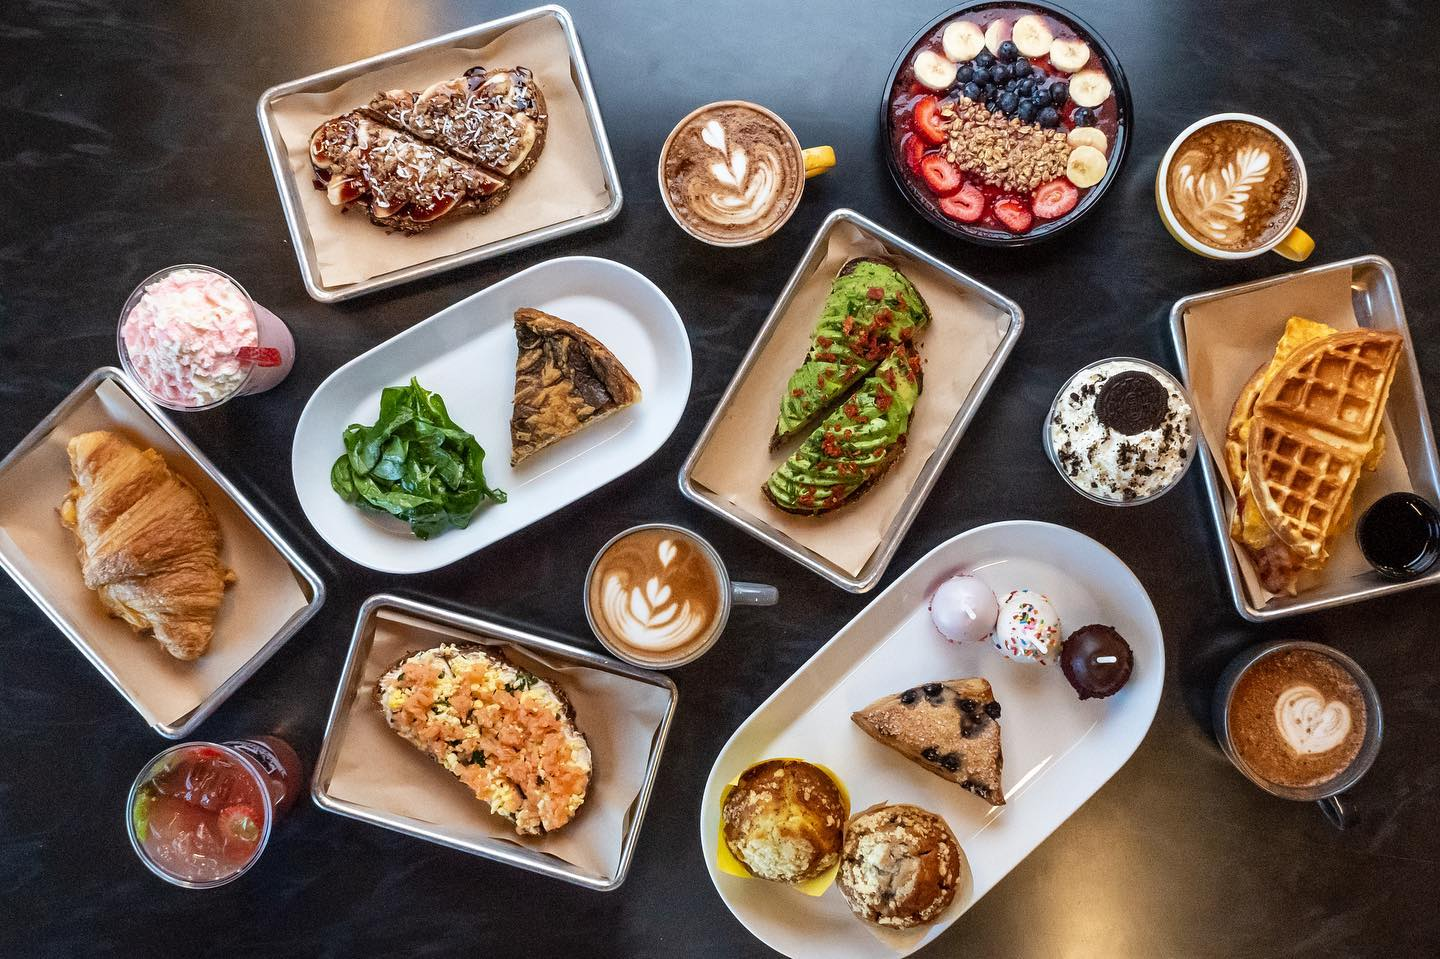 Breakfast dishes shot from overhead